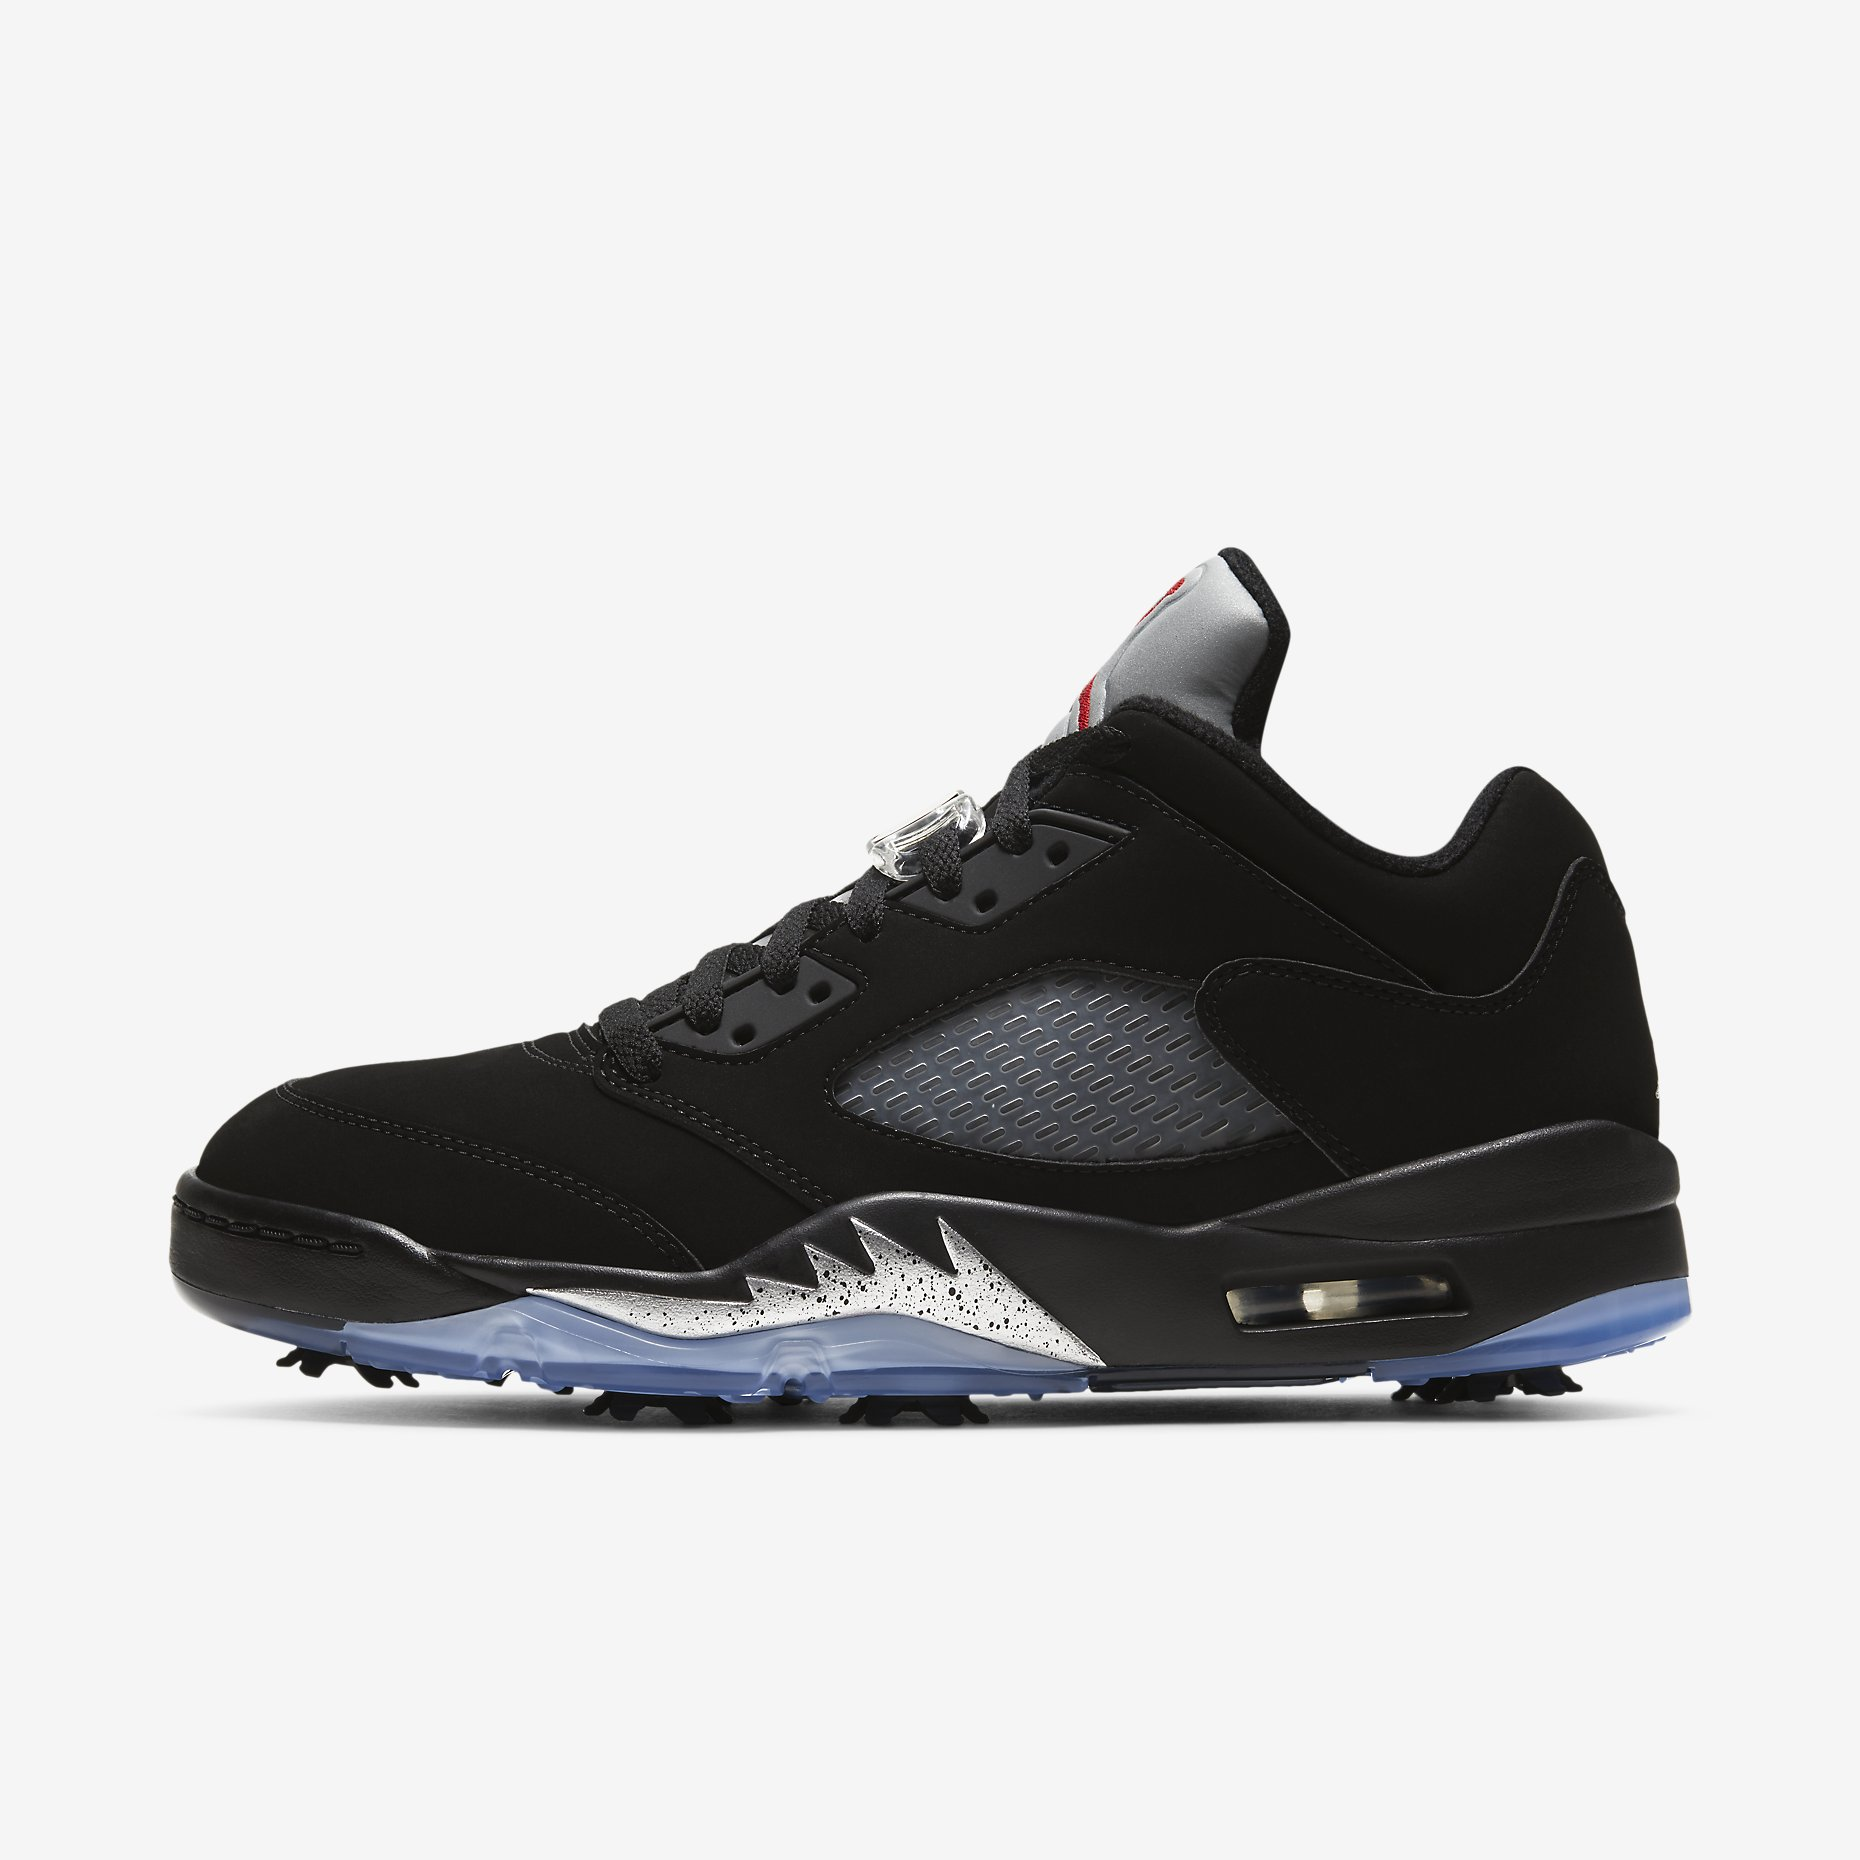 Golf's Air Jordan 5 Low 'Black/Metallic Silver'}